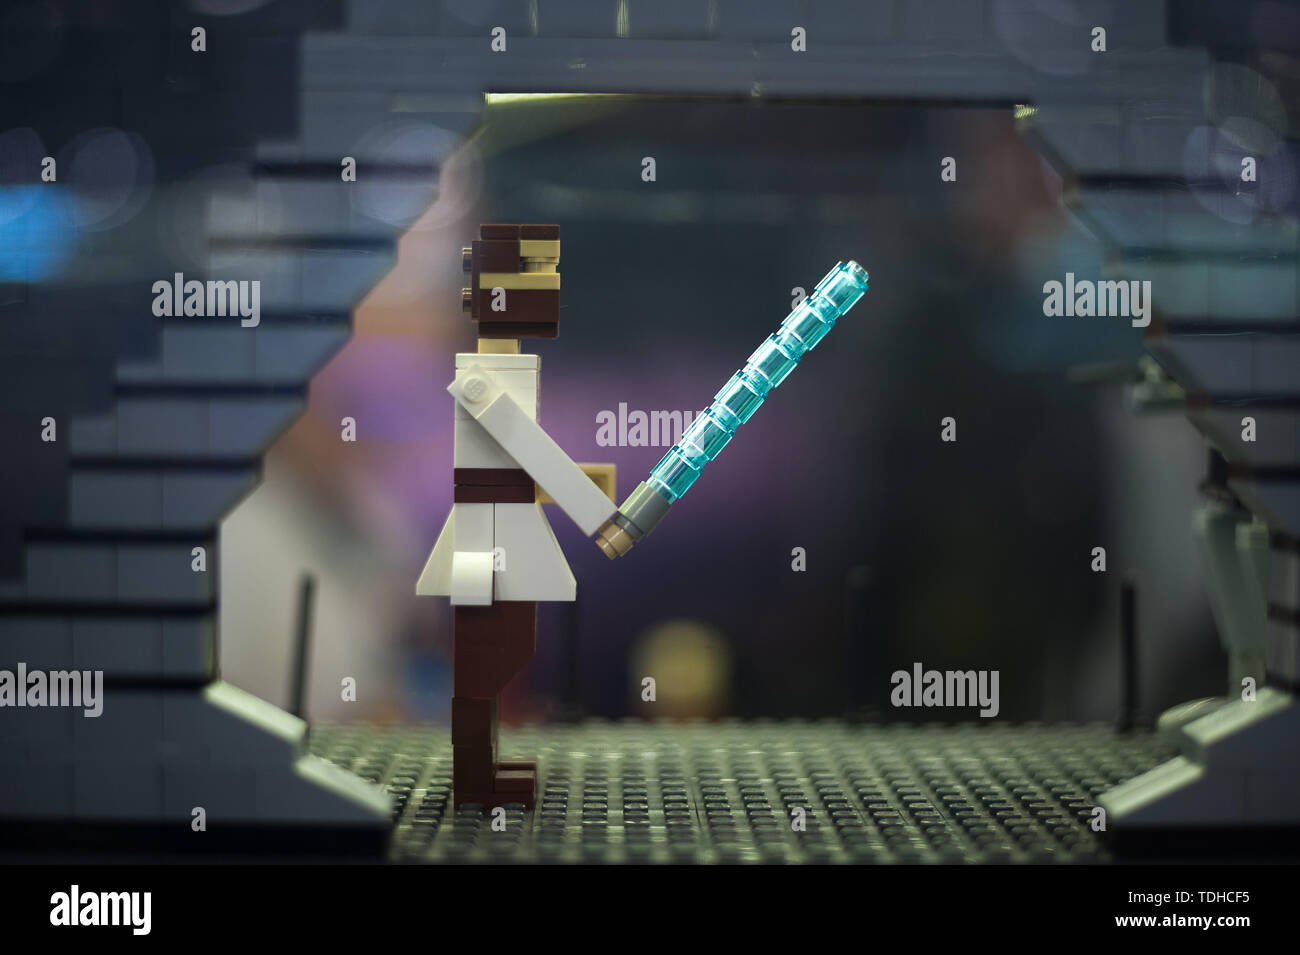 Malaga, Spain. 16th June, 2019. A mockup of a character of the film Star Wars displayed inside a glass cabinet during the exhibition. The LEGO exhibition is a temporary exhibition, the most biggest of Europe about figures of LEGO, showing different mockups mounted with more than 5 million of LEGO pieces to large scale such as Titanic ship, replicas of basketball players, the human body, characters of the film Star Wars, MARVEL and others. Credit: SOPA Images Limited/Alamy Live News Stock Photo